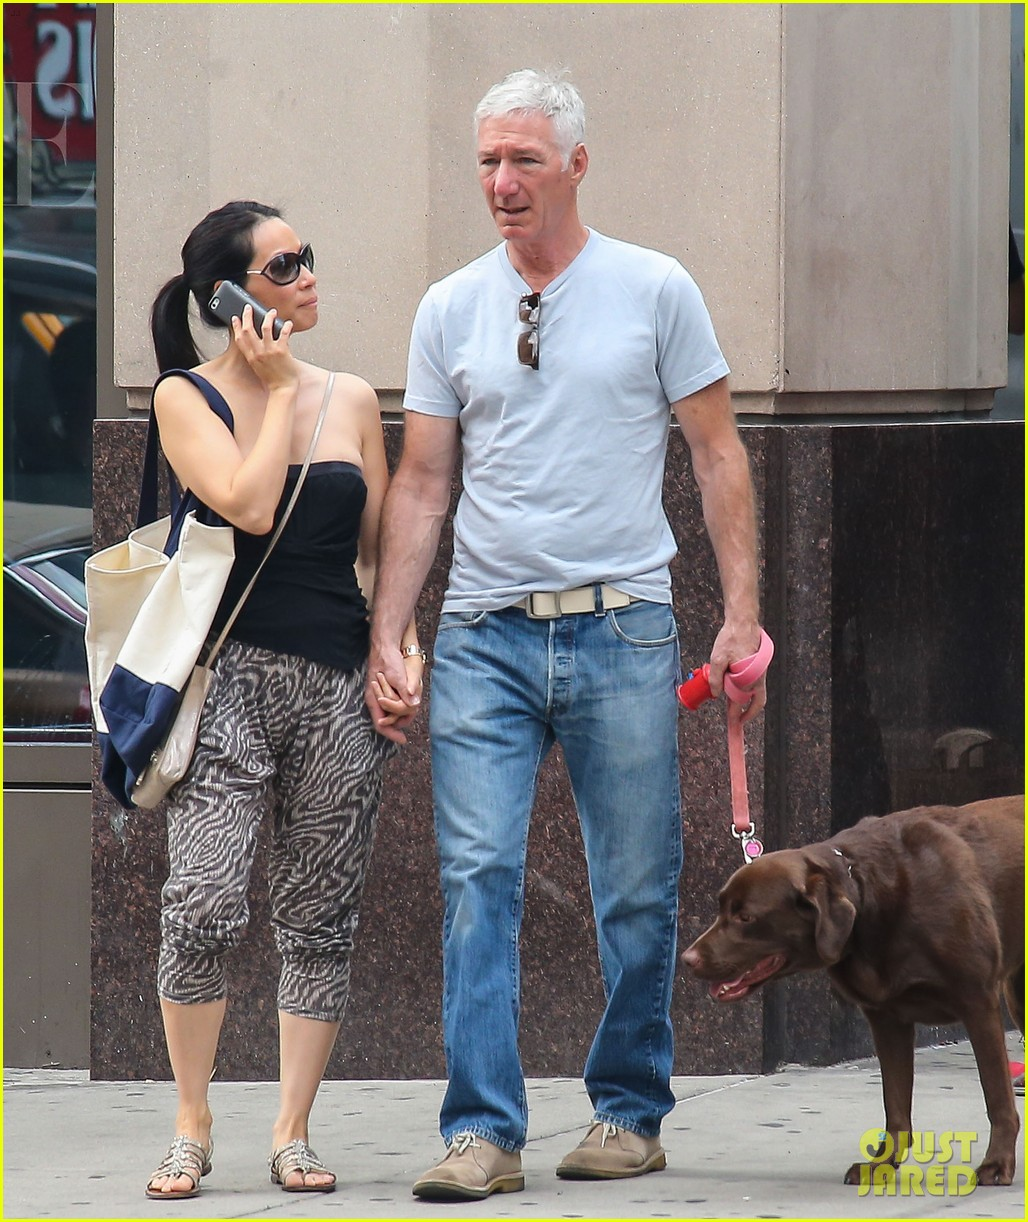 lucy liu new boyfriend hold hands in new york city 01